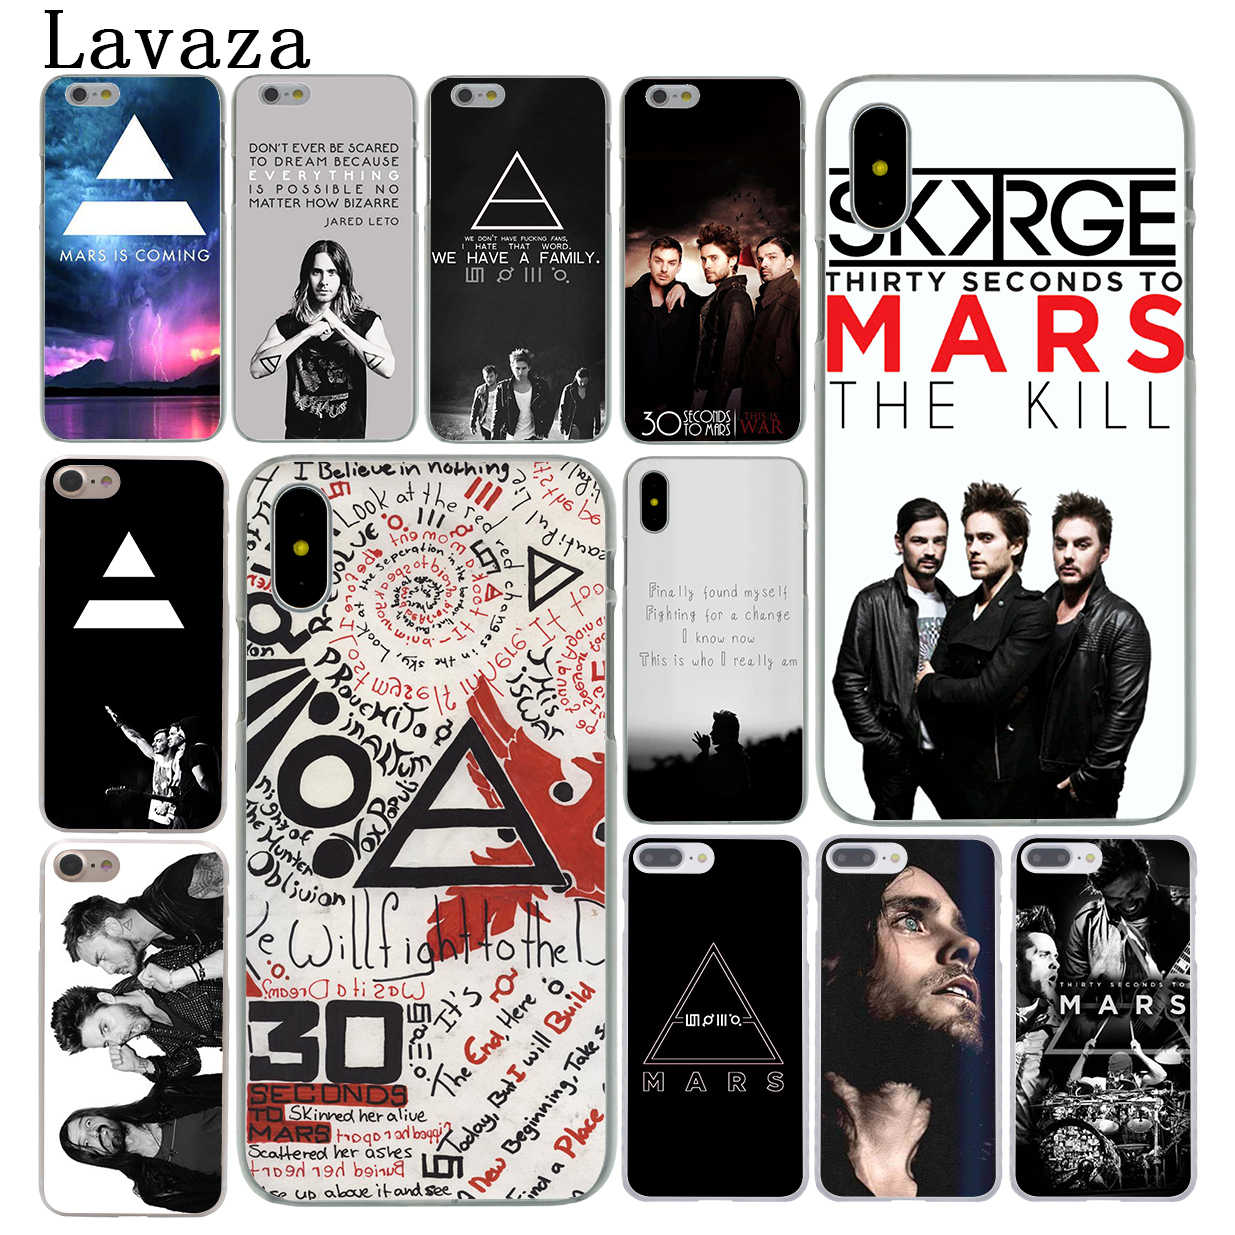 Lavaza 30 30STM Seconds To Mars Caso Capa Dura para o iPhone Da Apple X XS Max XR 6 6 s 7 8 Plus 5 5S SE 5C 4S 10 8 Além de Casos de Telefone